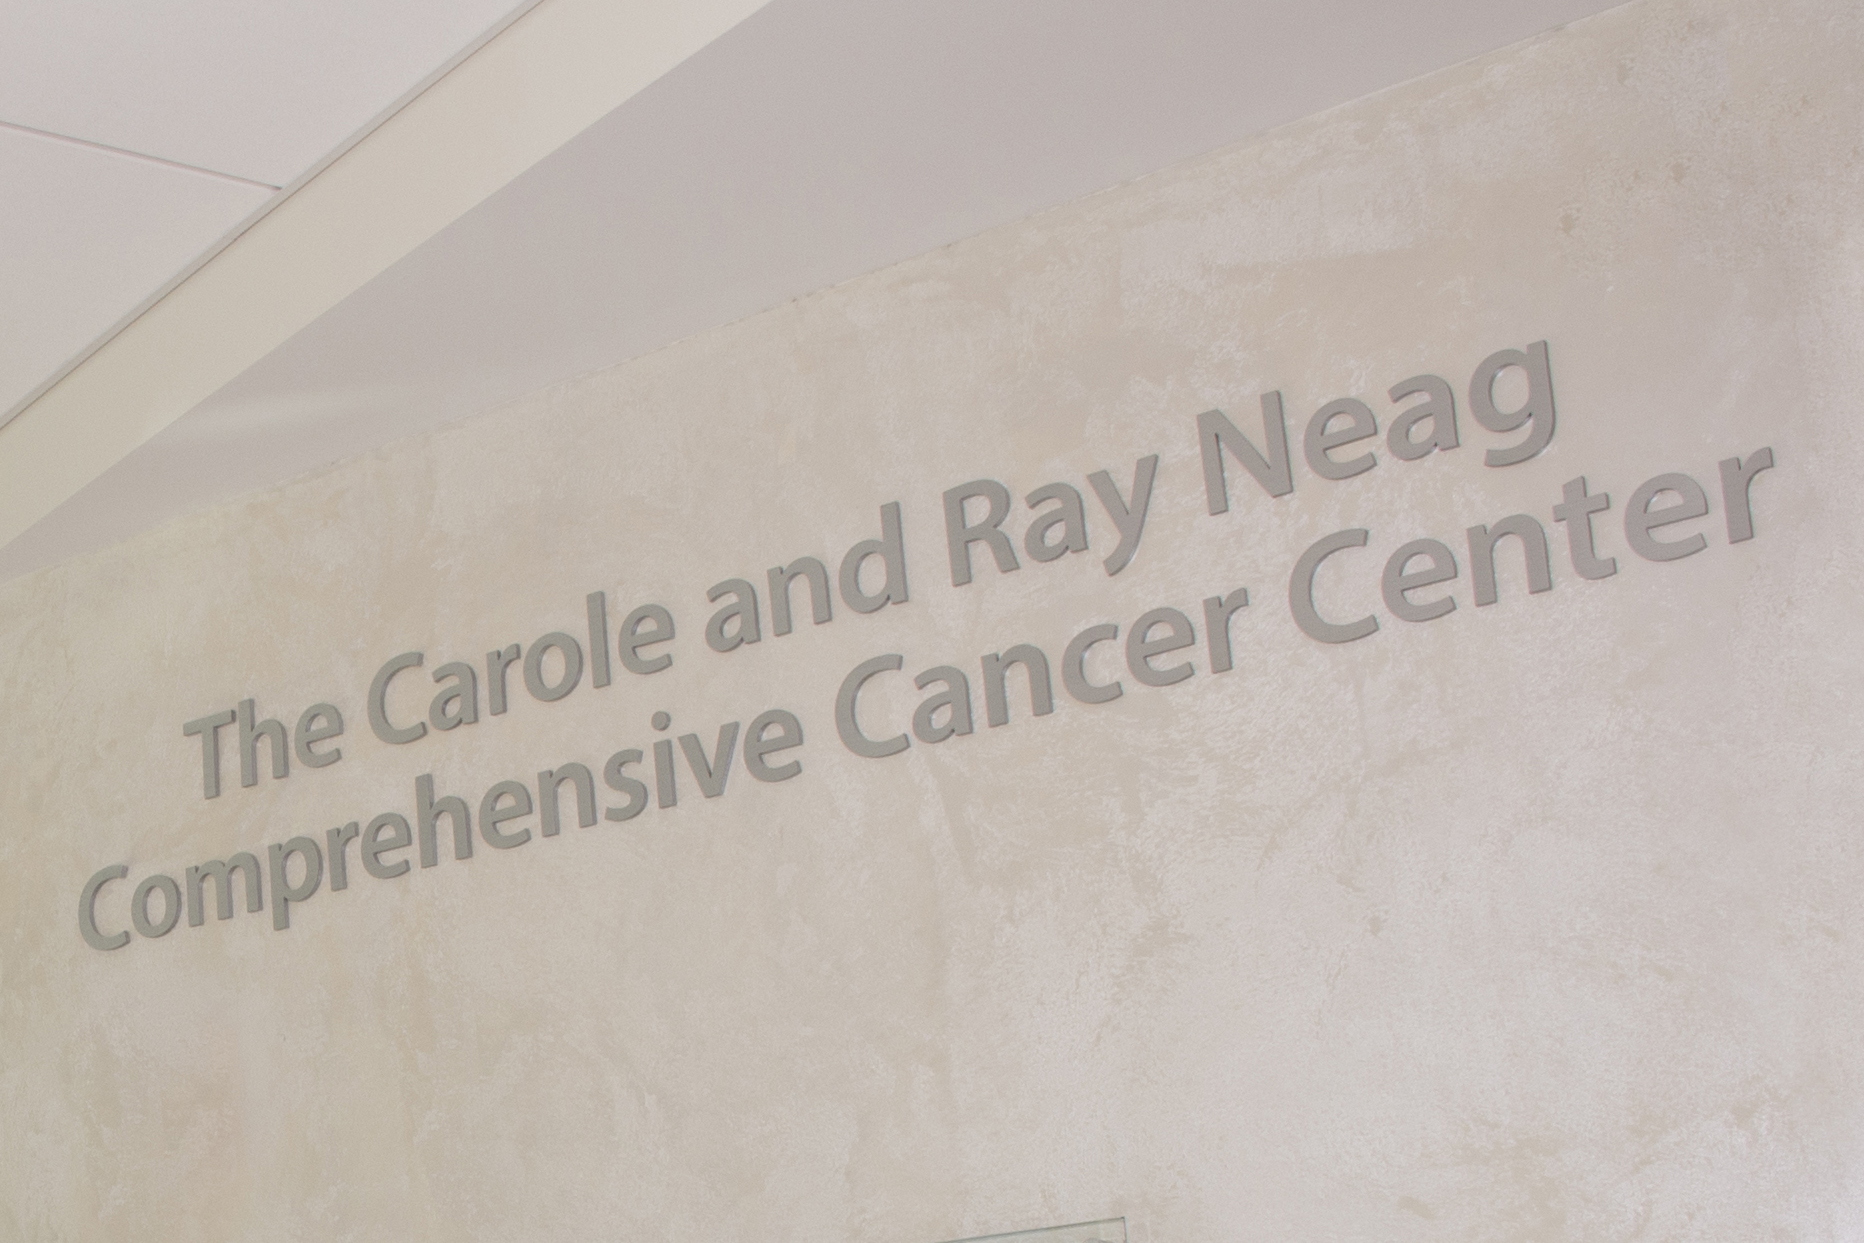 Sign at the entrance to the Carole and Ray Neag Cancer Center in the Outpatient Pavilion at UConn Health. (Janine Gelineau/UConn Health Photo)